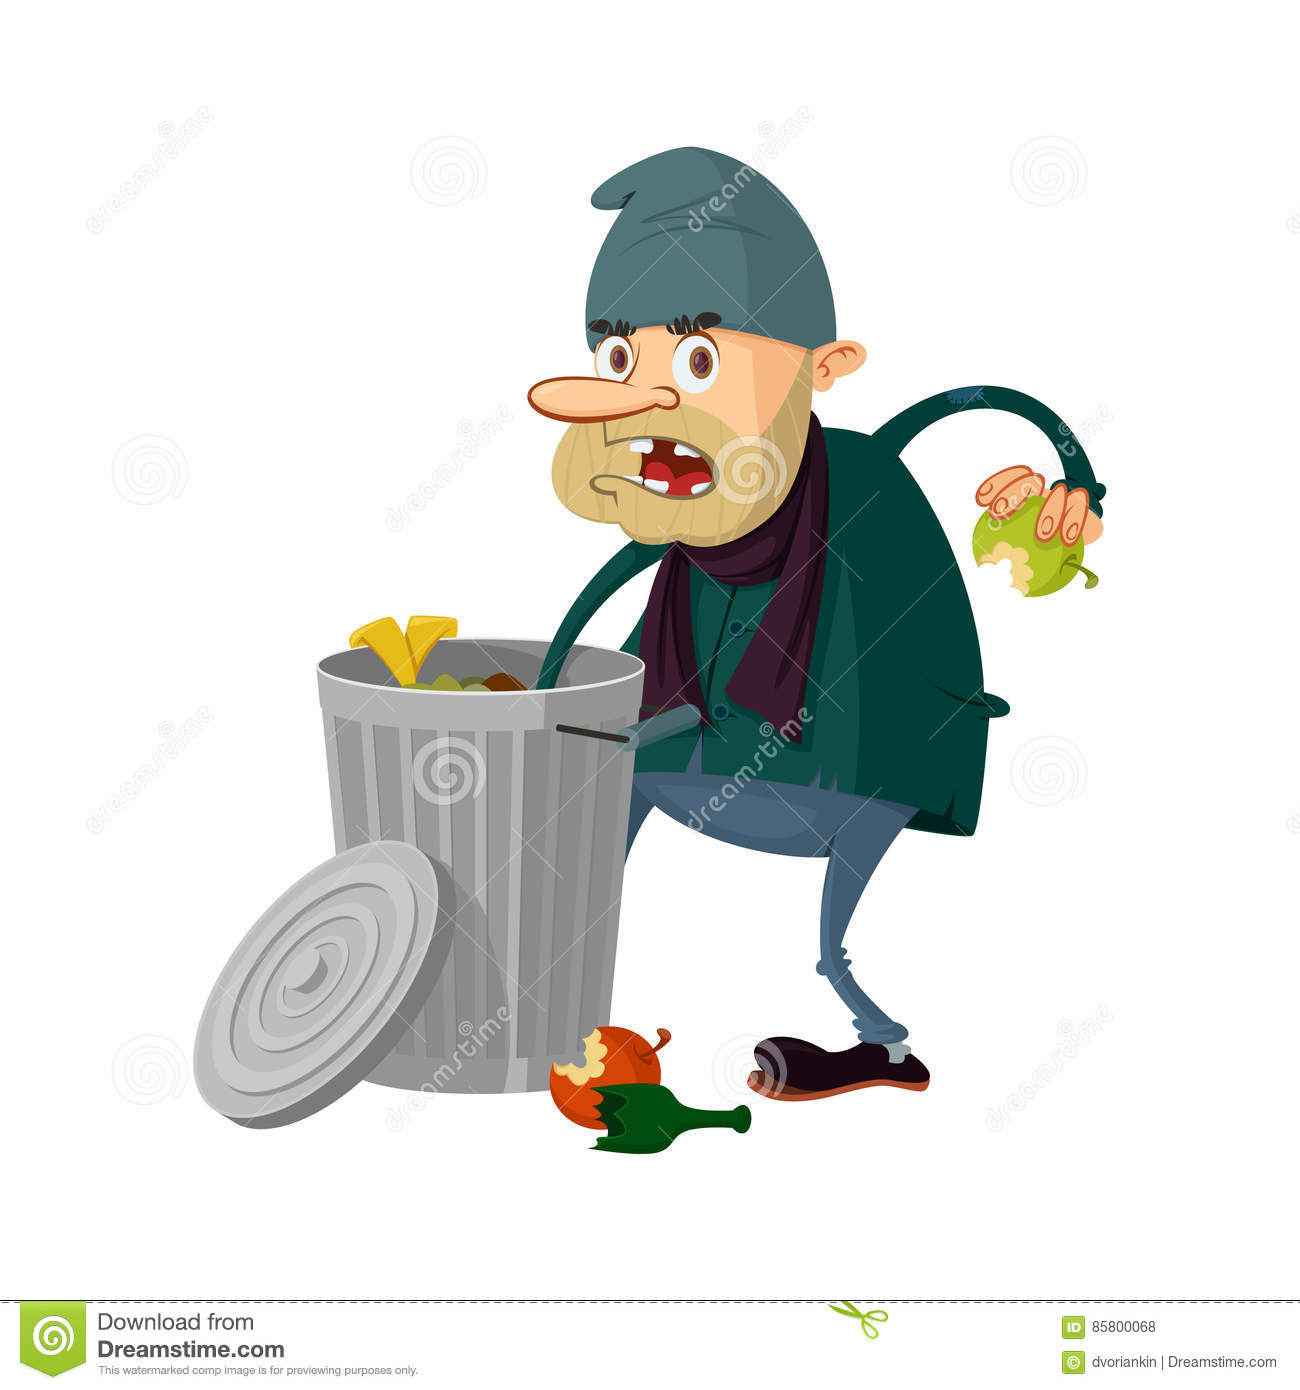 Homeless and trashcan stock vector. Illustration of food   10